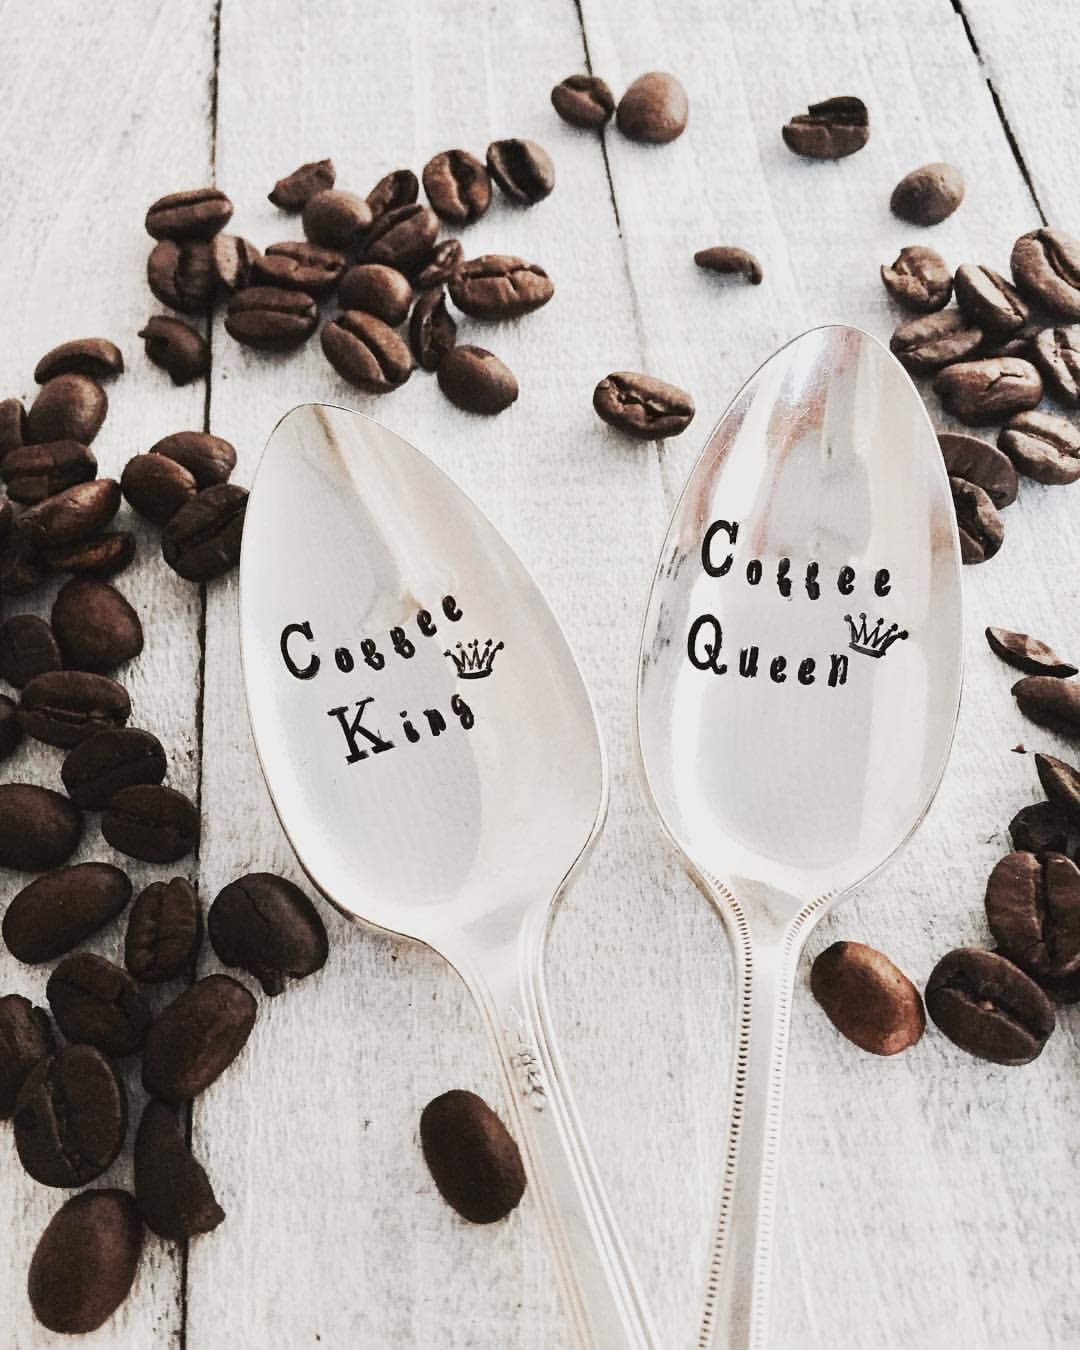 """16 Likes, 1 Comments - Patricia M. (@thepaperspoon) on Instagram: """"Kind of obsessed with this His & Hers coffee spoon set! ☕️🥄☕️🥄 #coffeelover #coffee #inthekitchen…"""""""